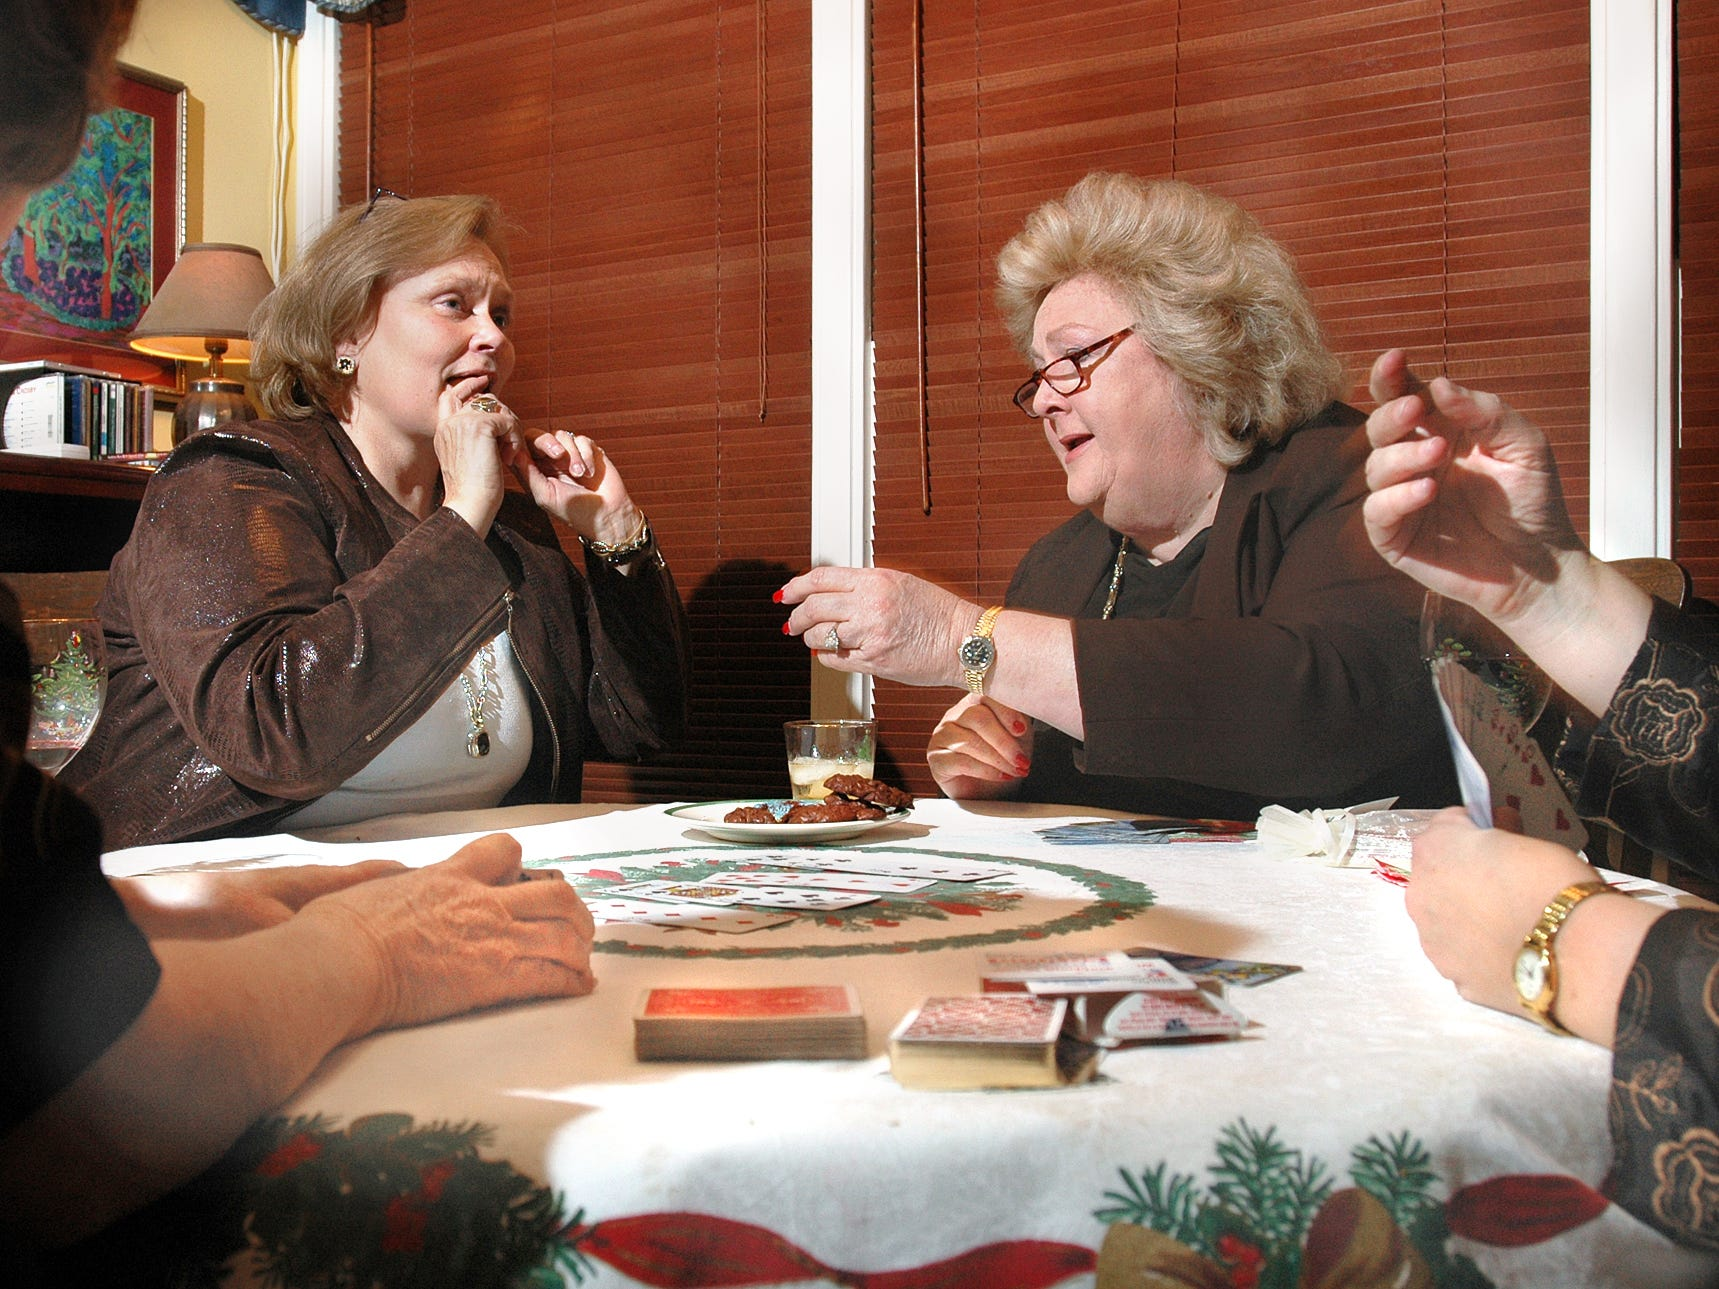 United States District Judge Janis Graham Jack (right) plays bridge with Judge Sandra Watts (left), 117th District Court, and others in 2005. Graham Jack was the first woman federal judge to serve in Texas south of San Antonio.